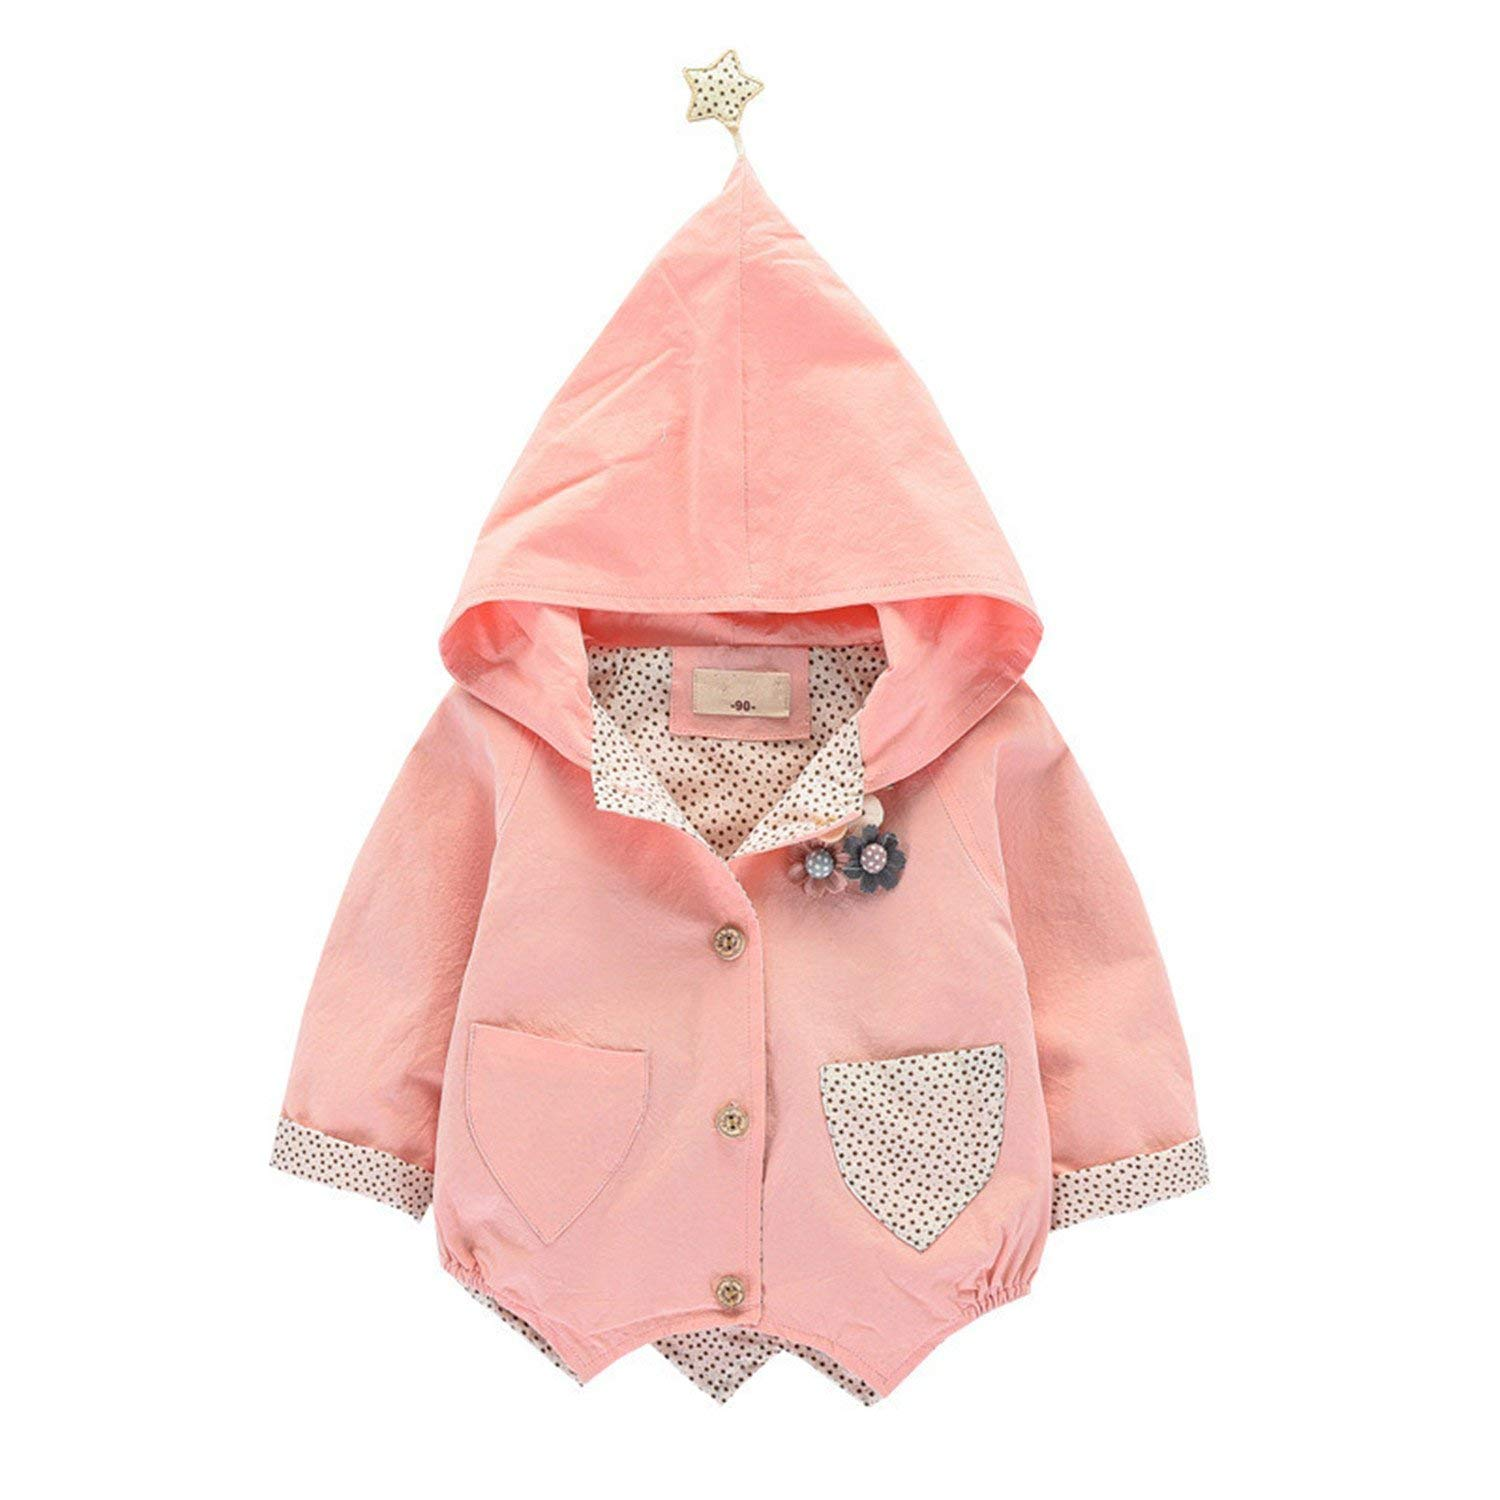 634fb106b Get Quotations · Samuel Roussel Spring Cute Children'S Windbreakers Girls  Jackets Baby Girl Coat Infant Outfit